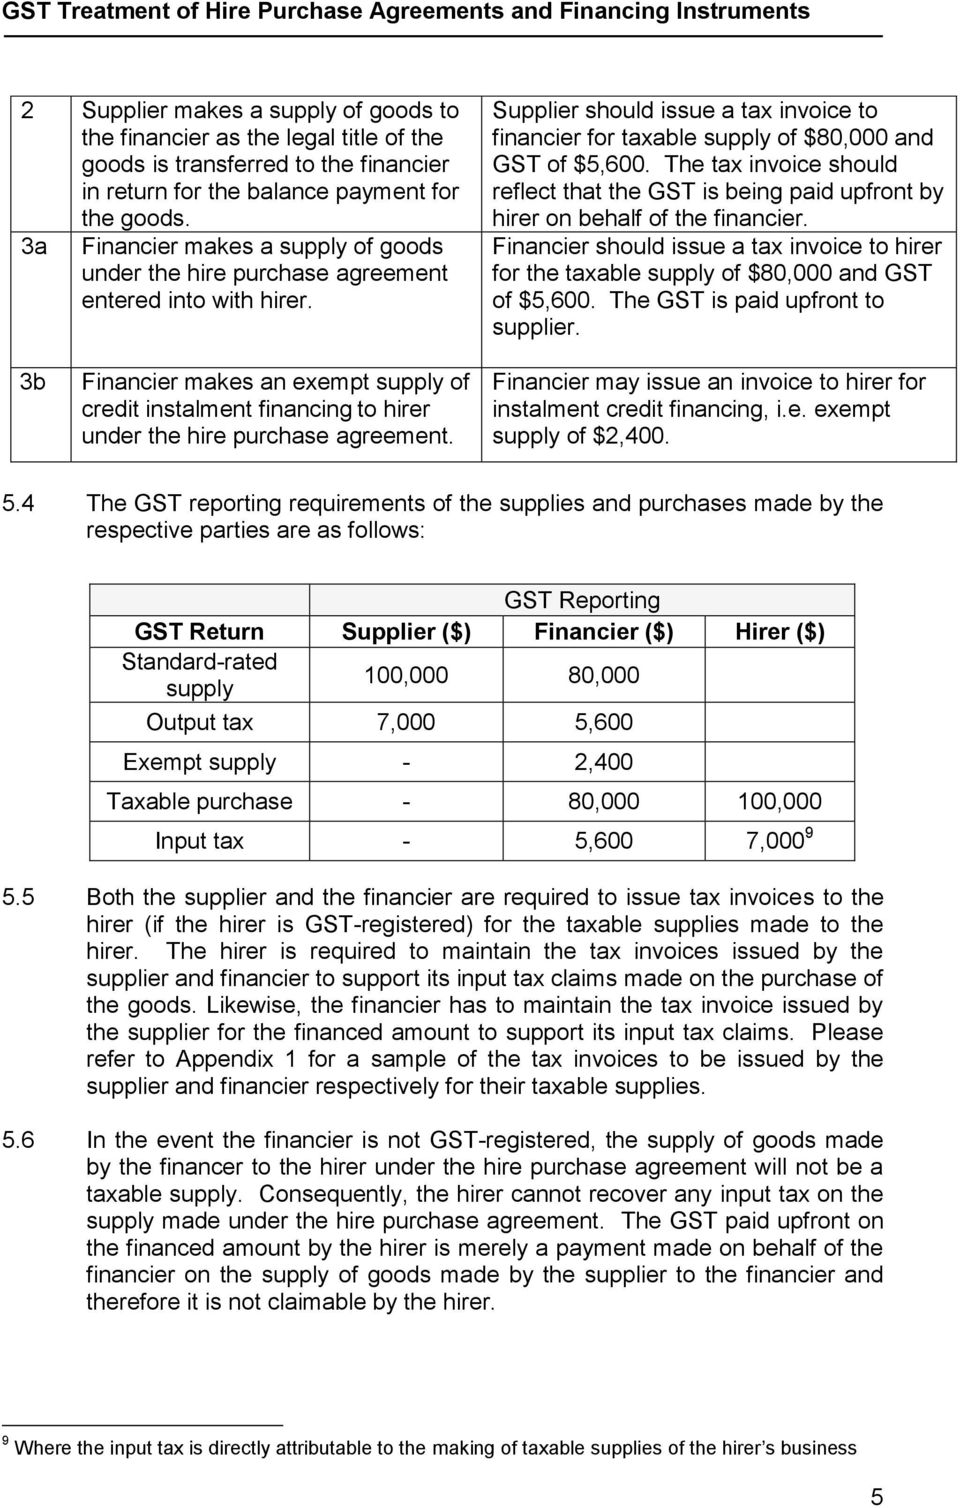 The tax invoice should reflect that the GST is being paid upfront by hirer on behalf of the financier.